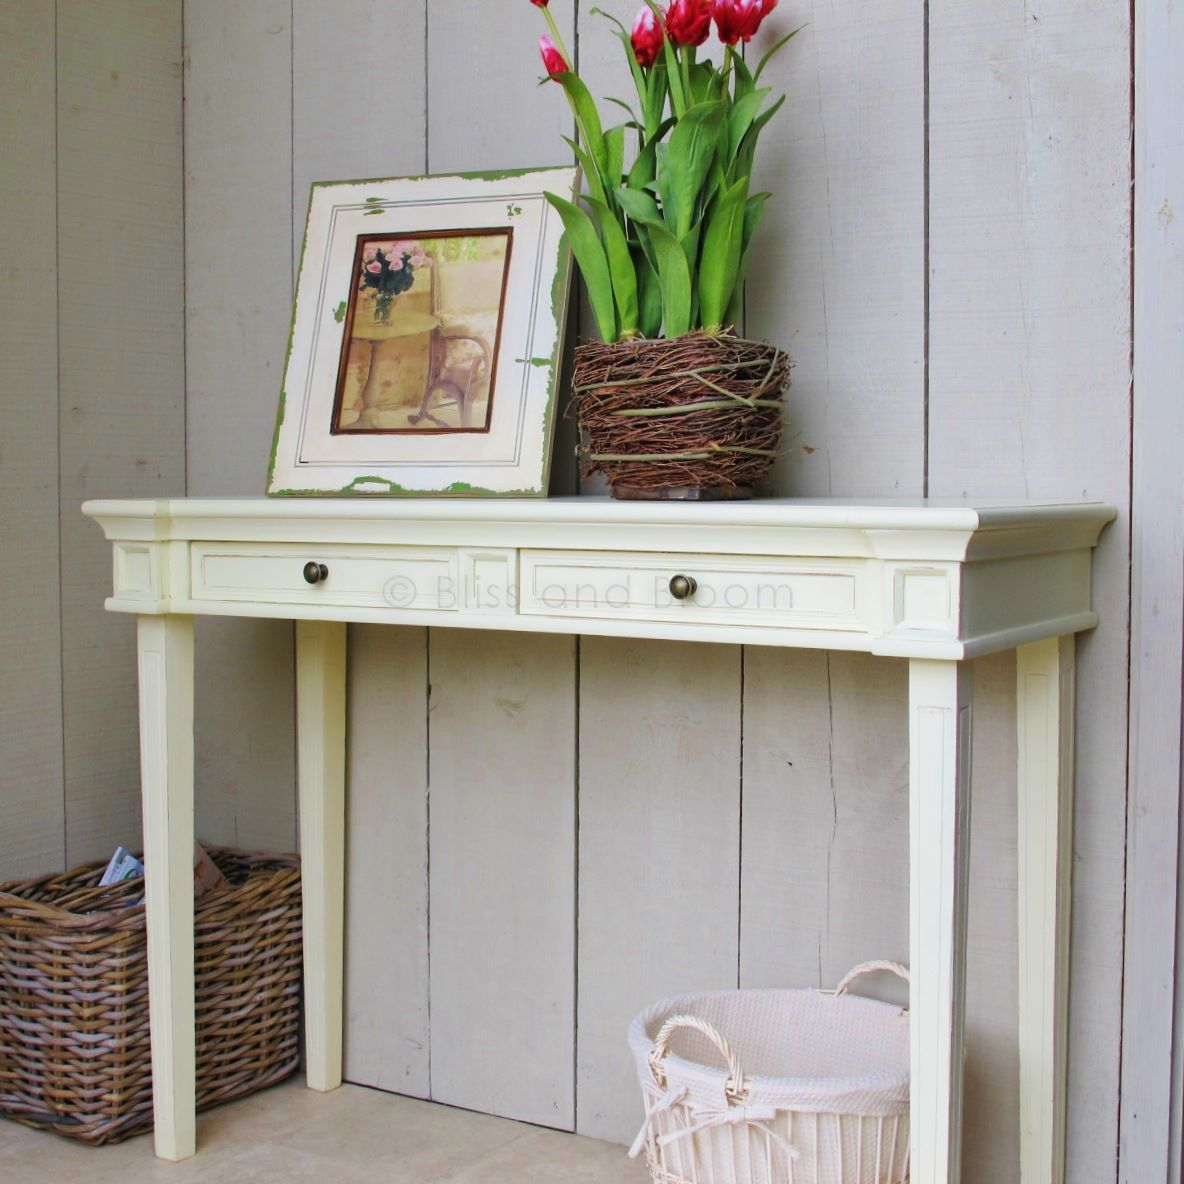 Cream console table seconds bliss and bloom ltd for Cream hall table